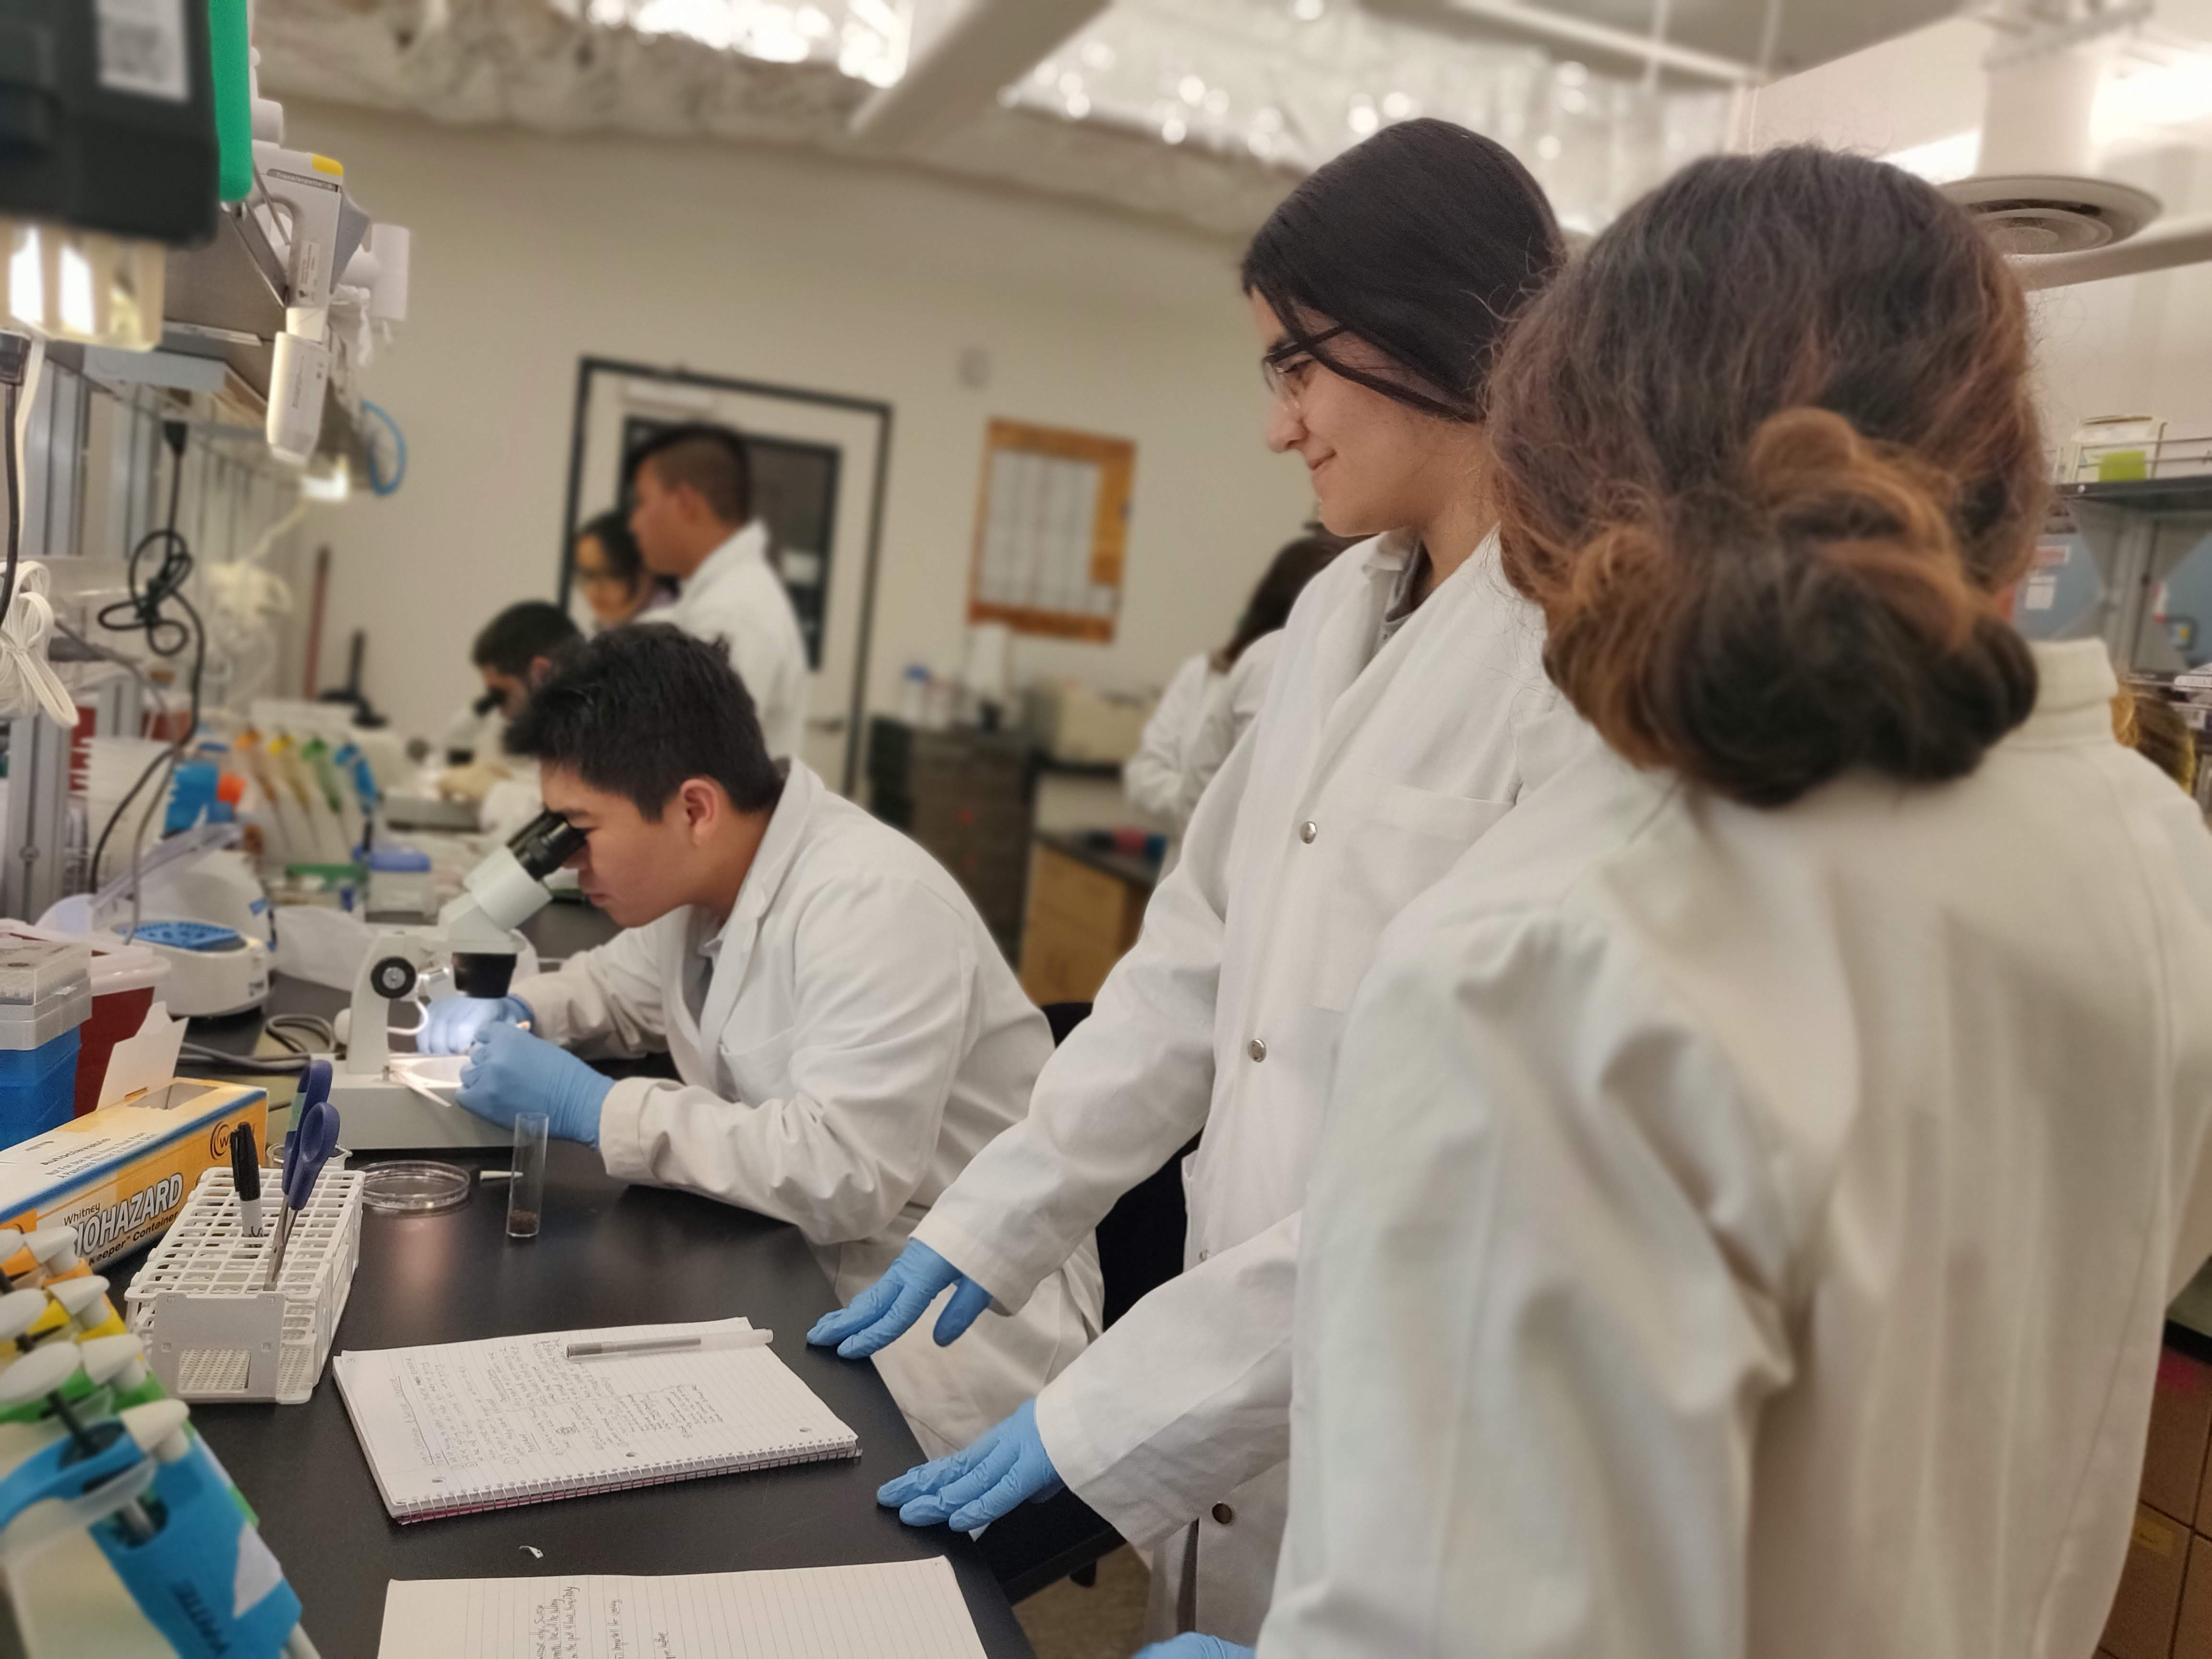 Students in the Boz Institute's research immersion course dissect fly brains